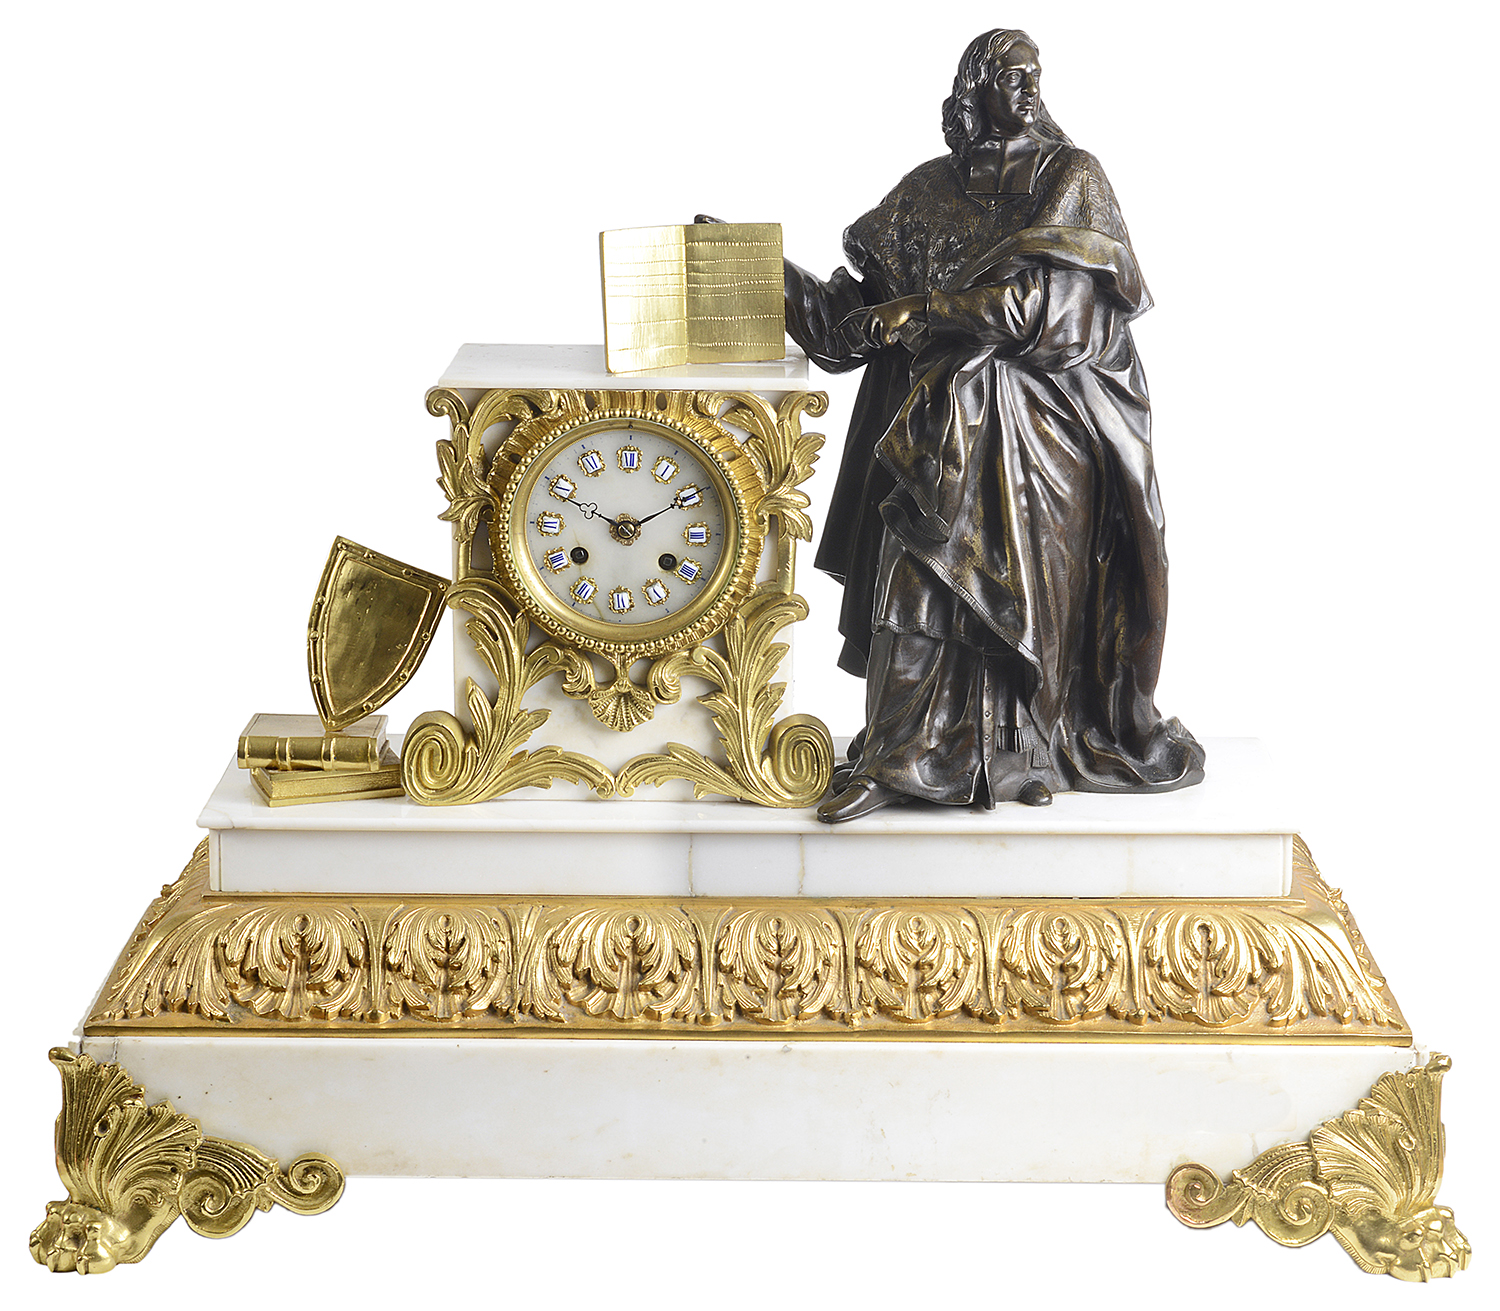 Lot 35 - A large 19th century French marble and bronze figural mantle clock